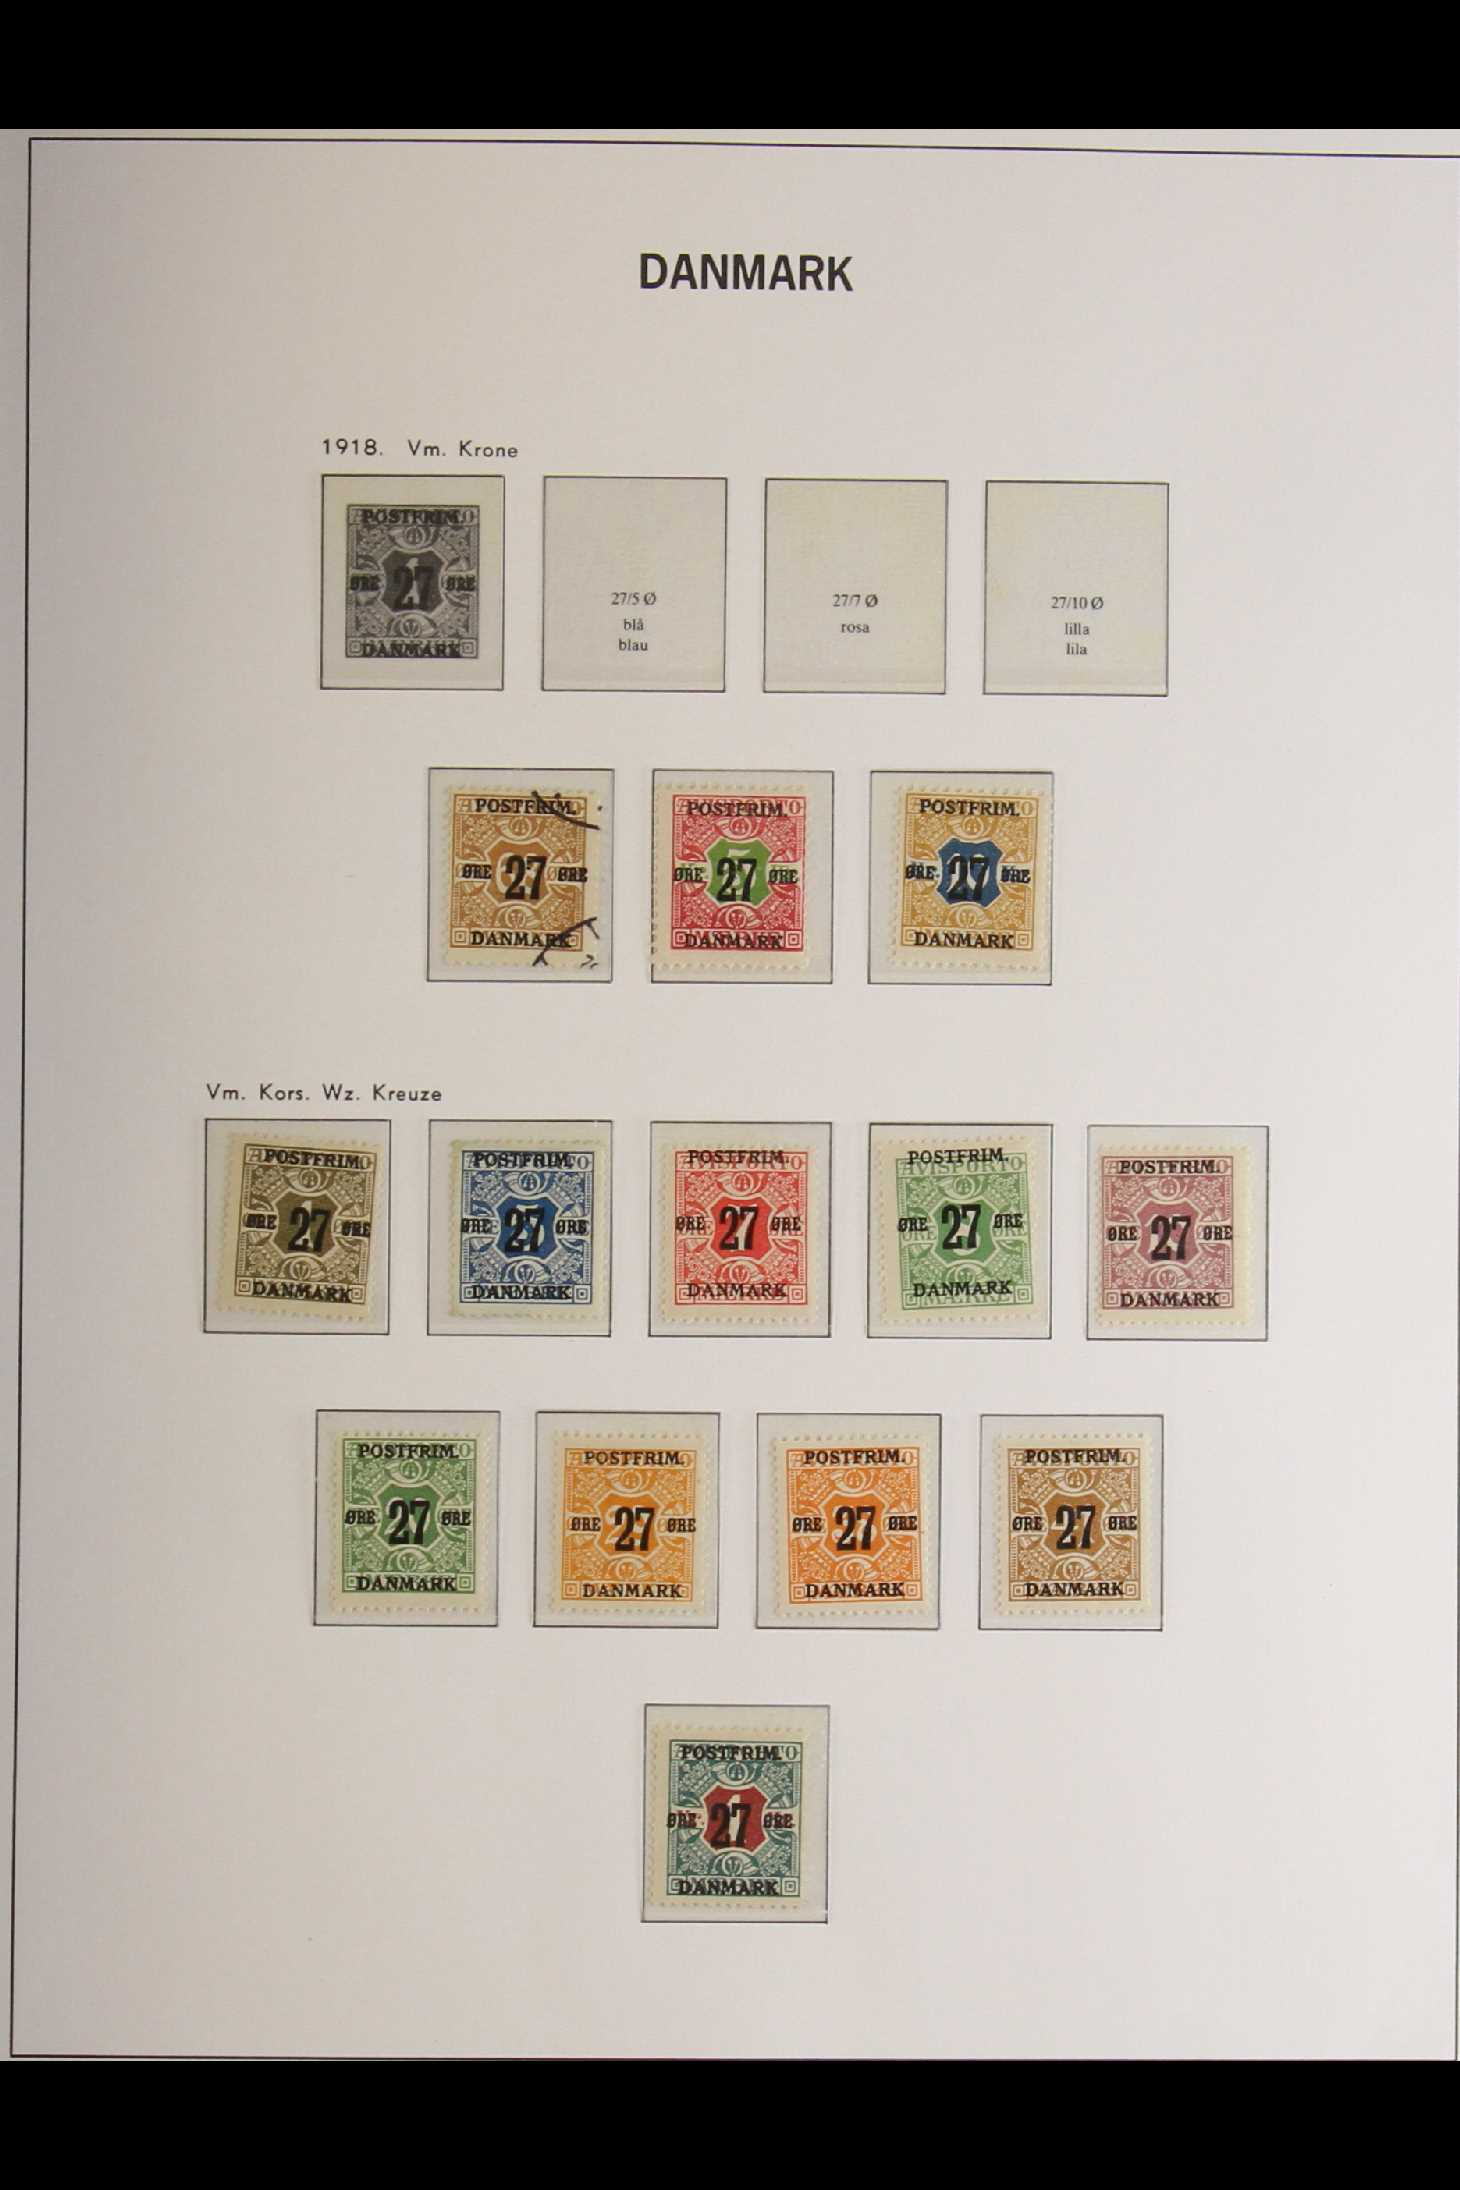 DENMARK 1882-1969 mint and used collection in an album incl. 1882 (small corner figures) 5 ore and - Image 15 of 15